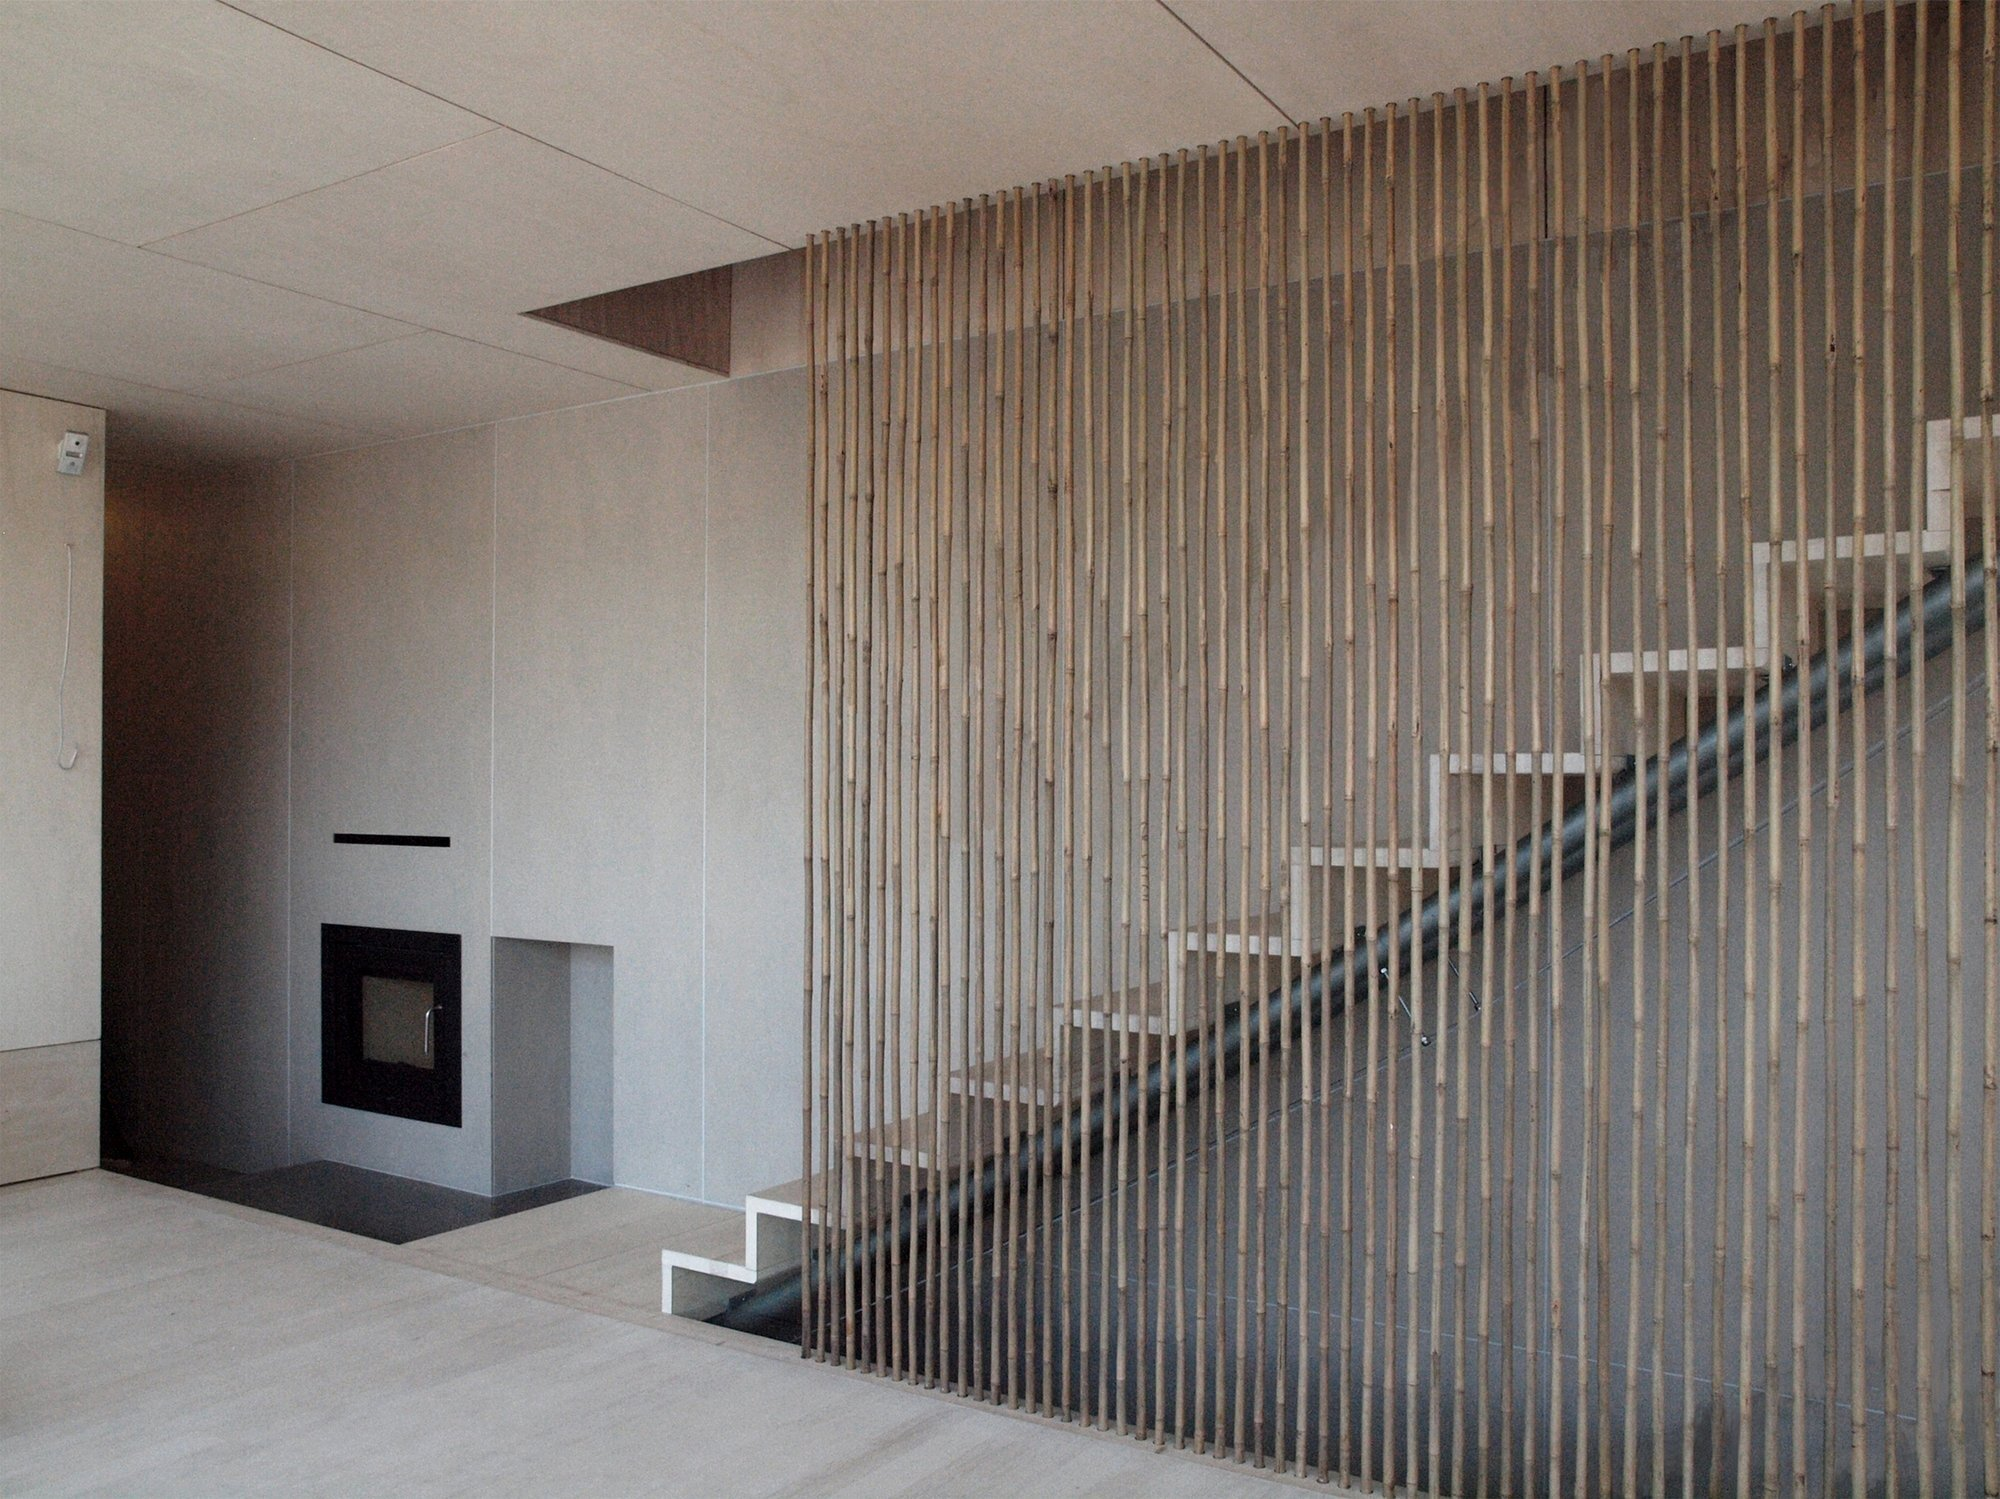 House Sømme in Norway by Knut Hjeltnes - Small House Oslo - Staircase - Humble Homes